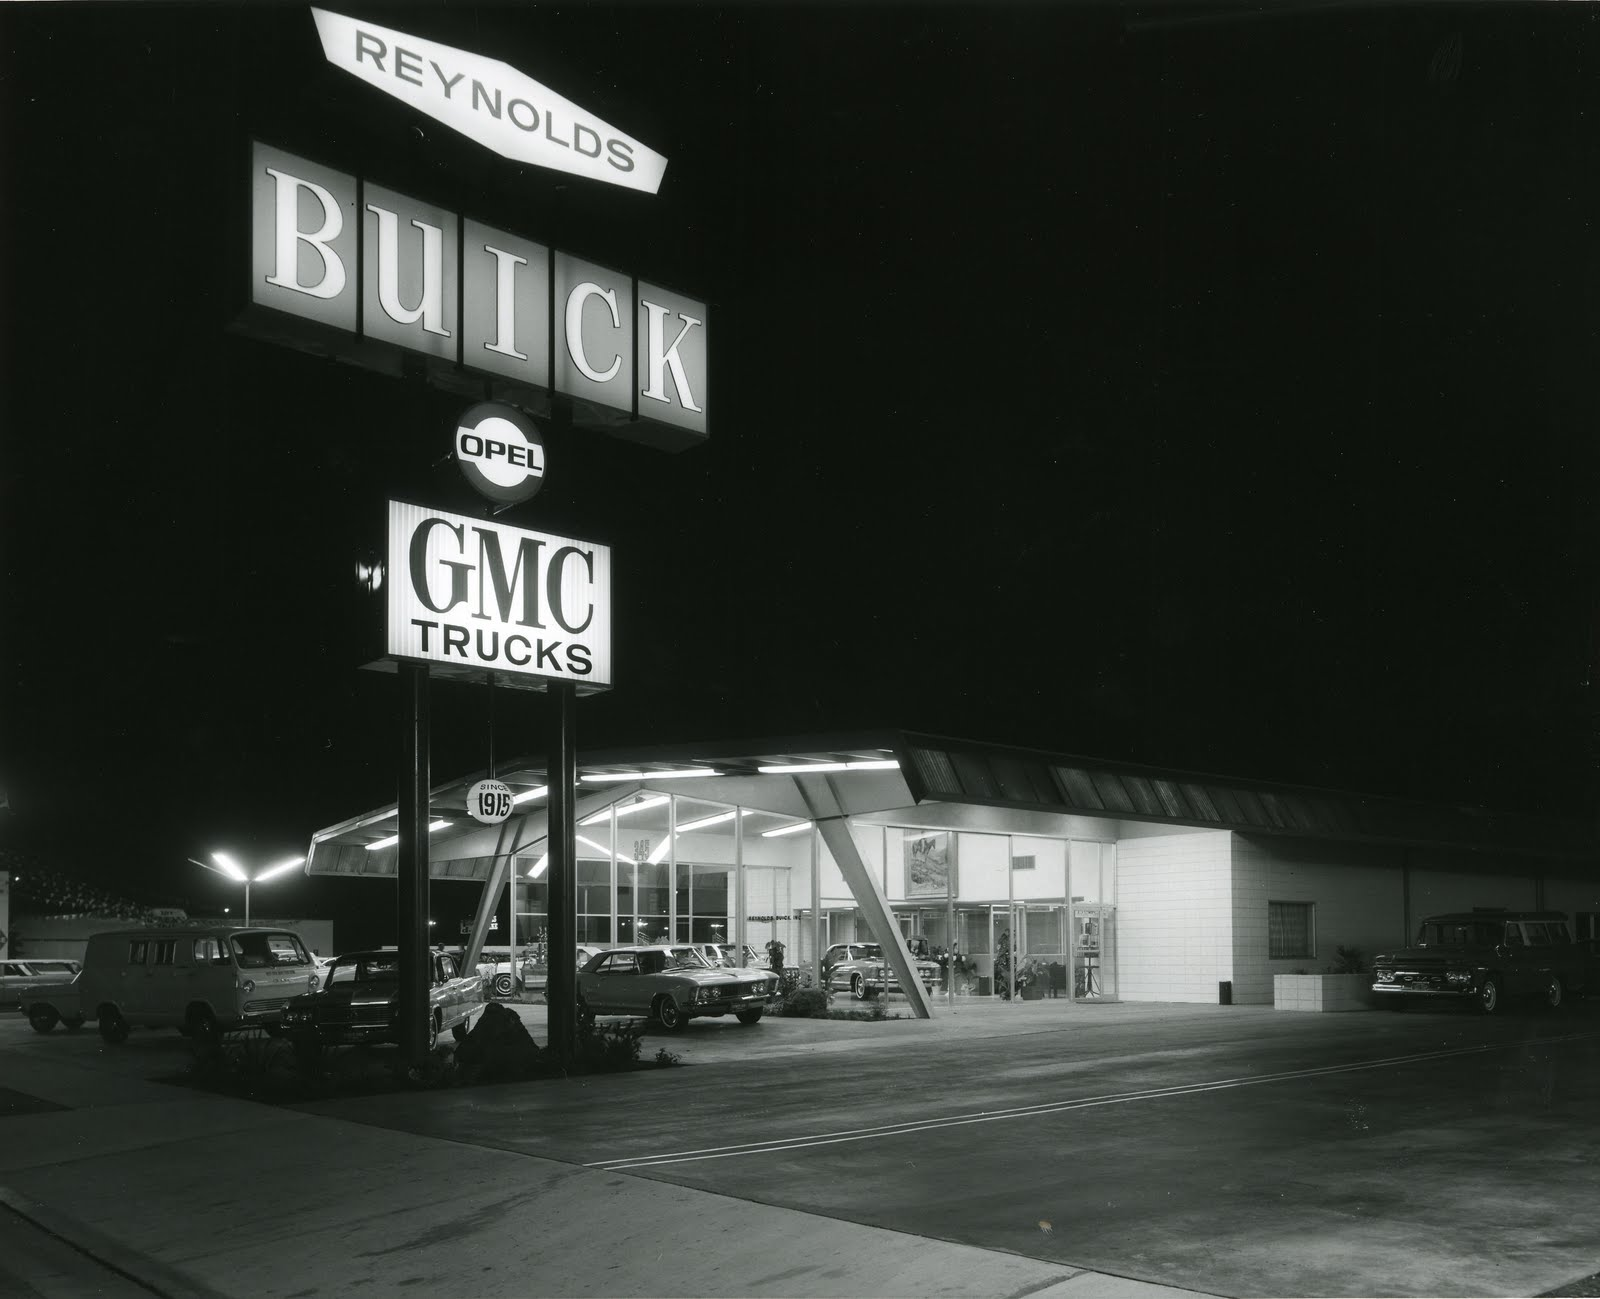 Reynolds Buick GMC Blog: Fun Friday: Greetings from Covina